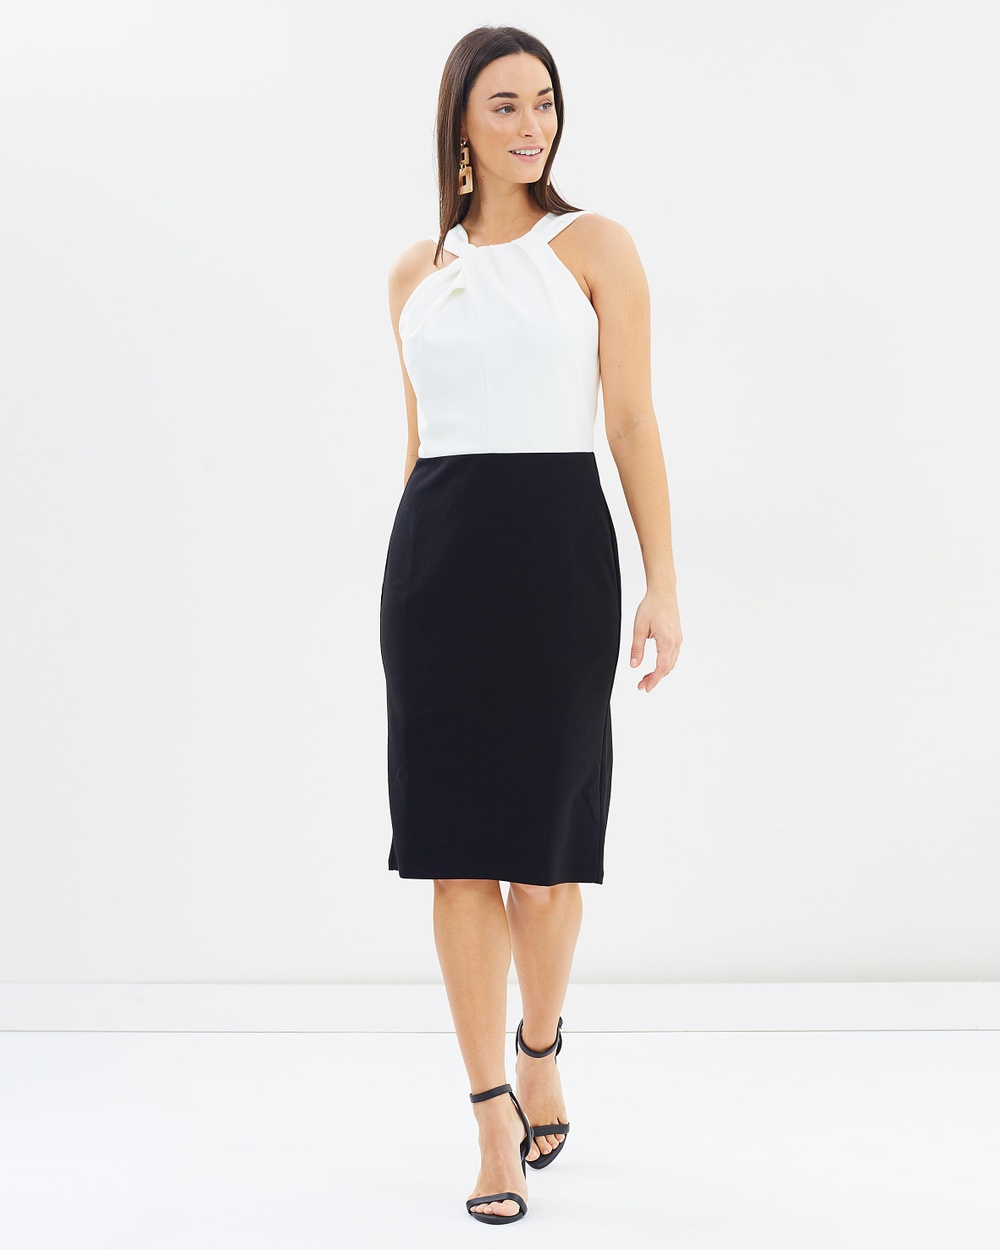 Dorothy Perkins Colour Block Pencil Dress Dresses Black Colour-Block Pencil Dress